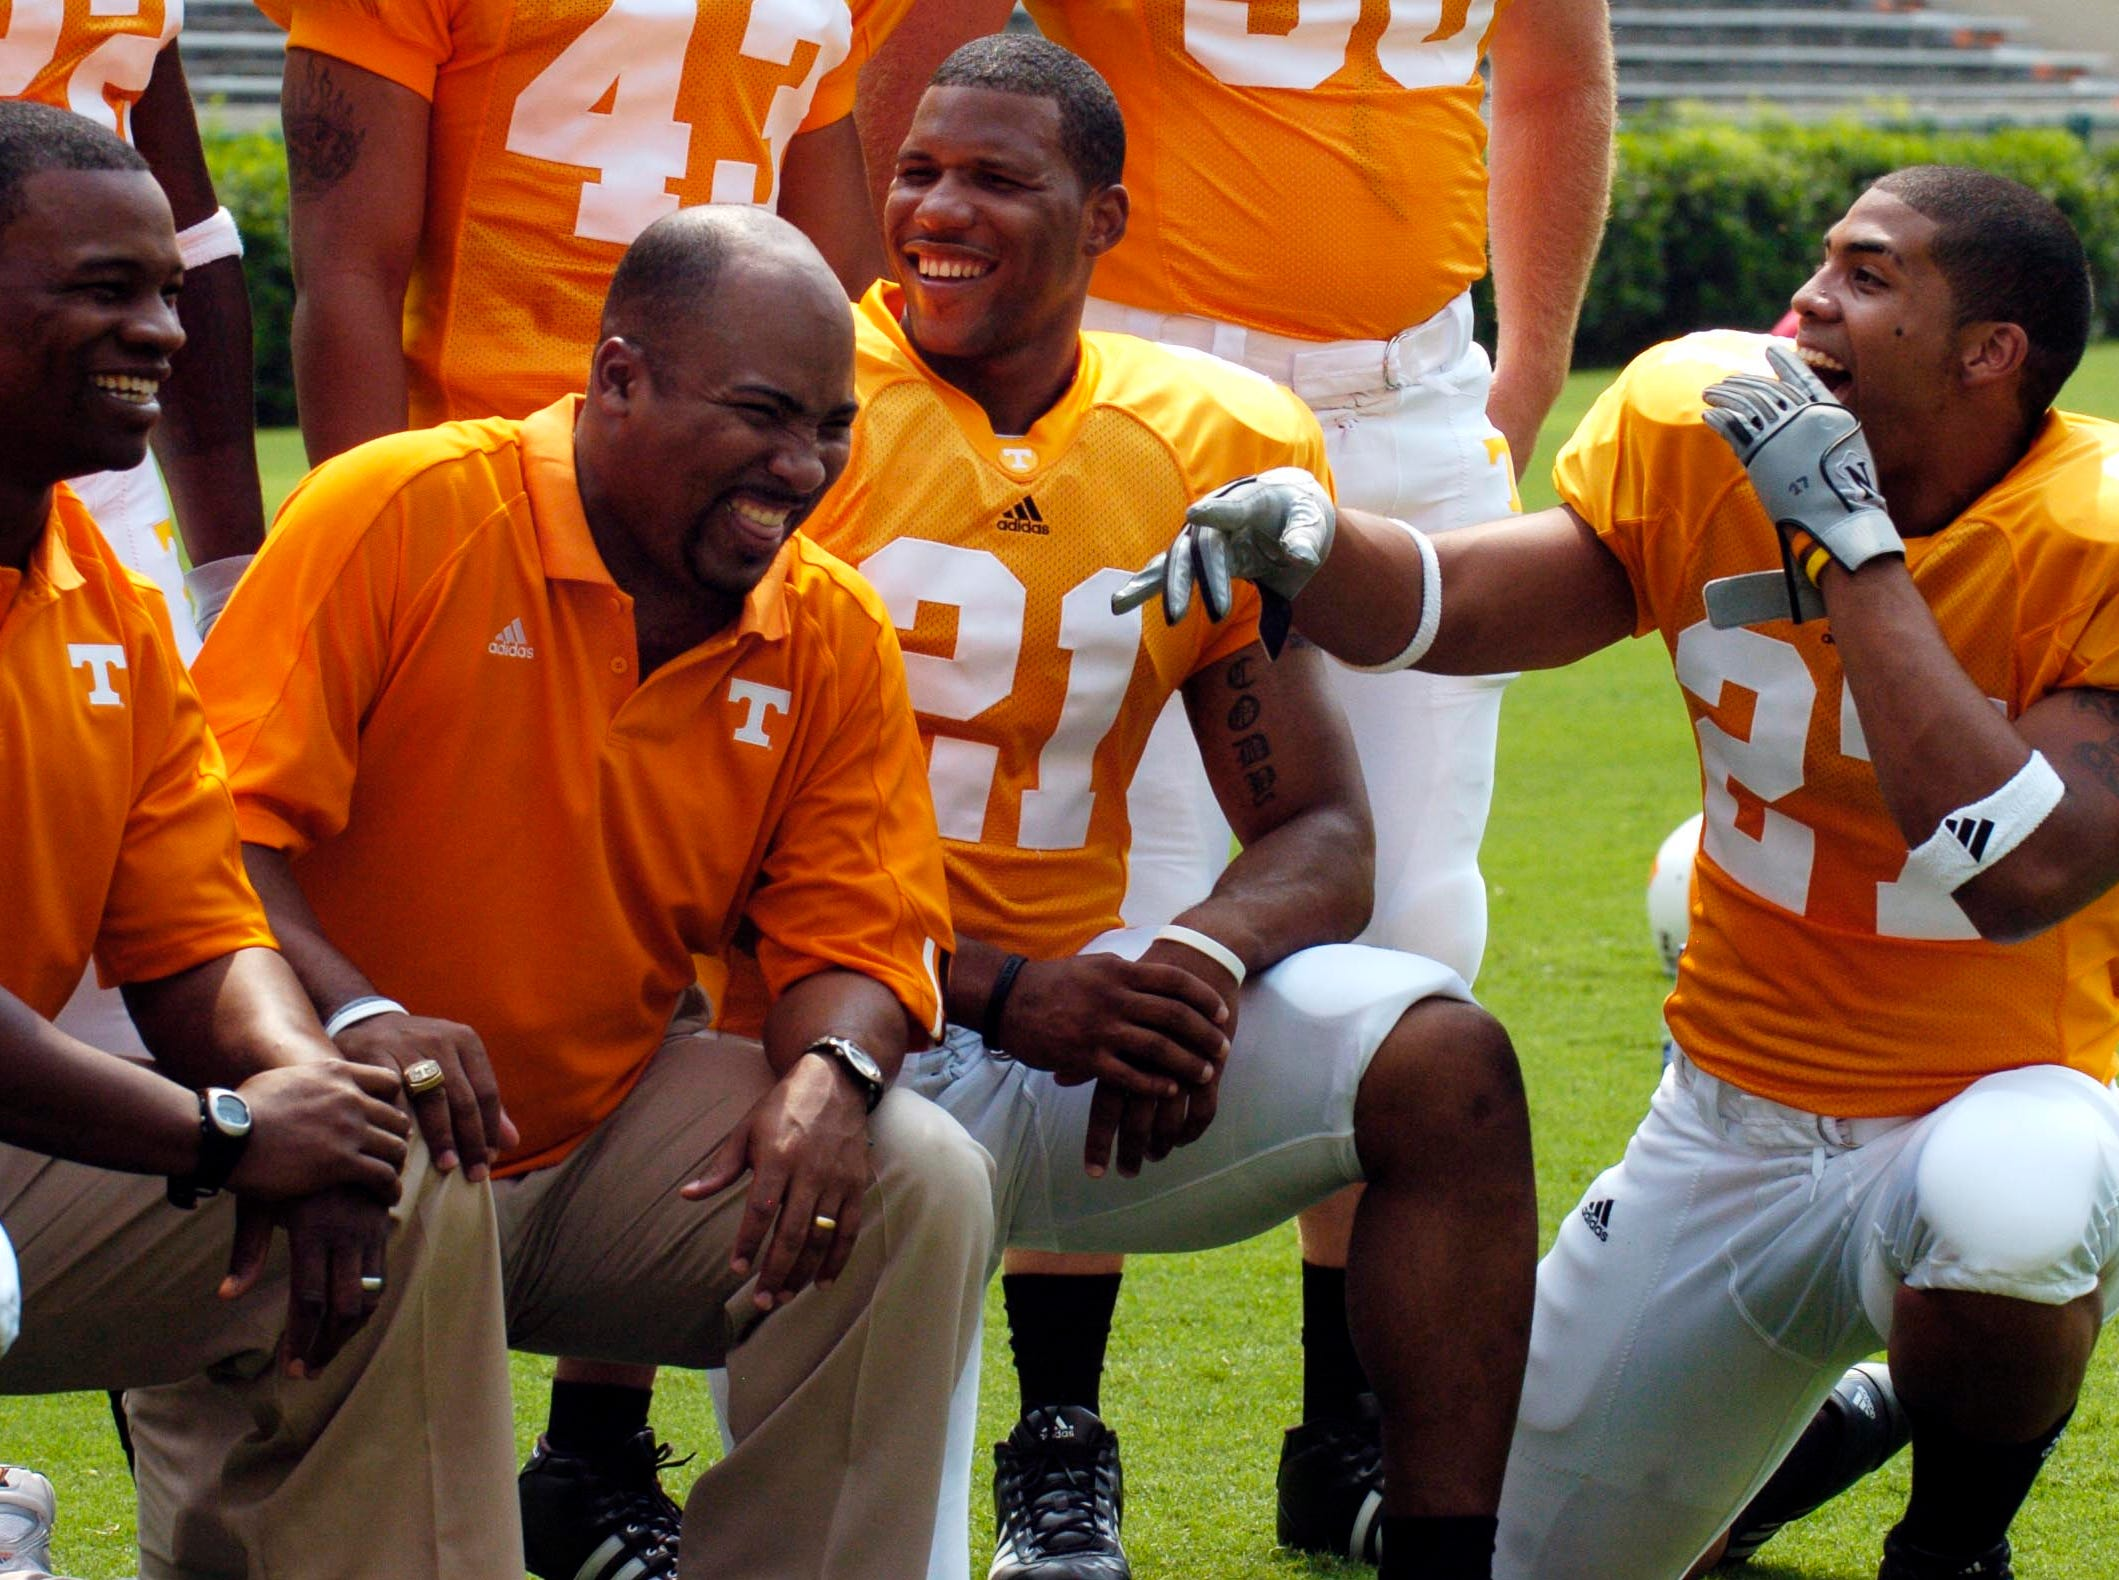 utfootball3.ASB#4056.JPG--SPORTS-- UT running backs (right to left) Arian Foster and Gerald Riggs, joke with coach Trooper Taylor and graduate assistant Jay Graham while taking a group photo during media day.